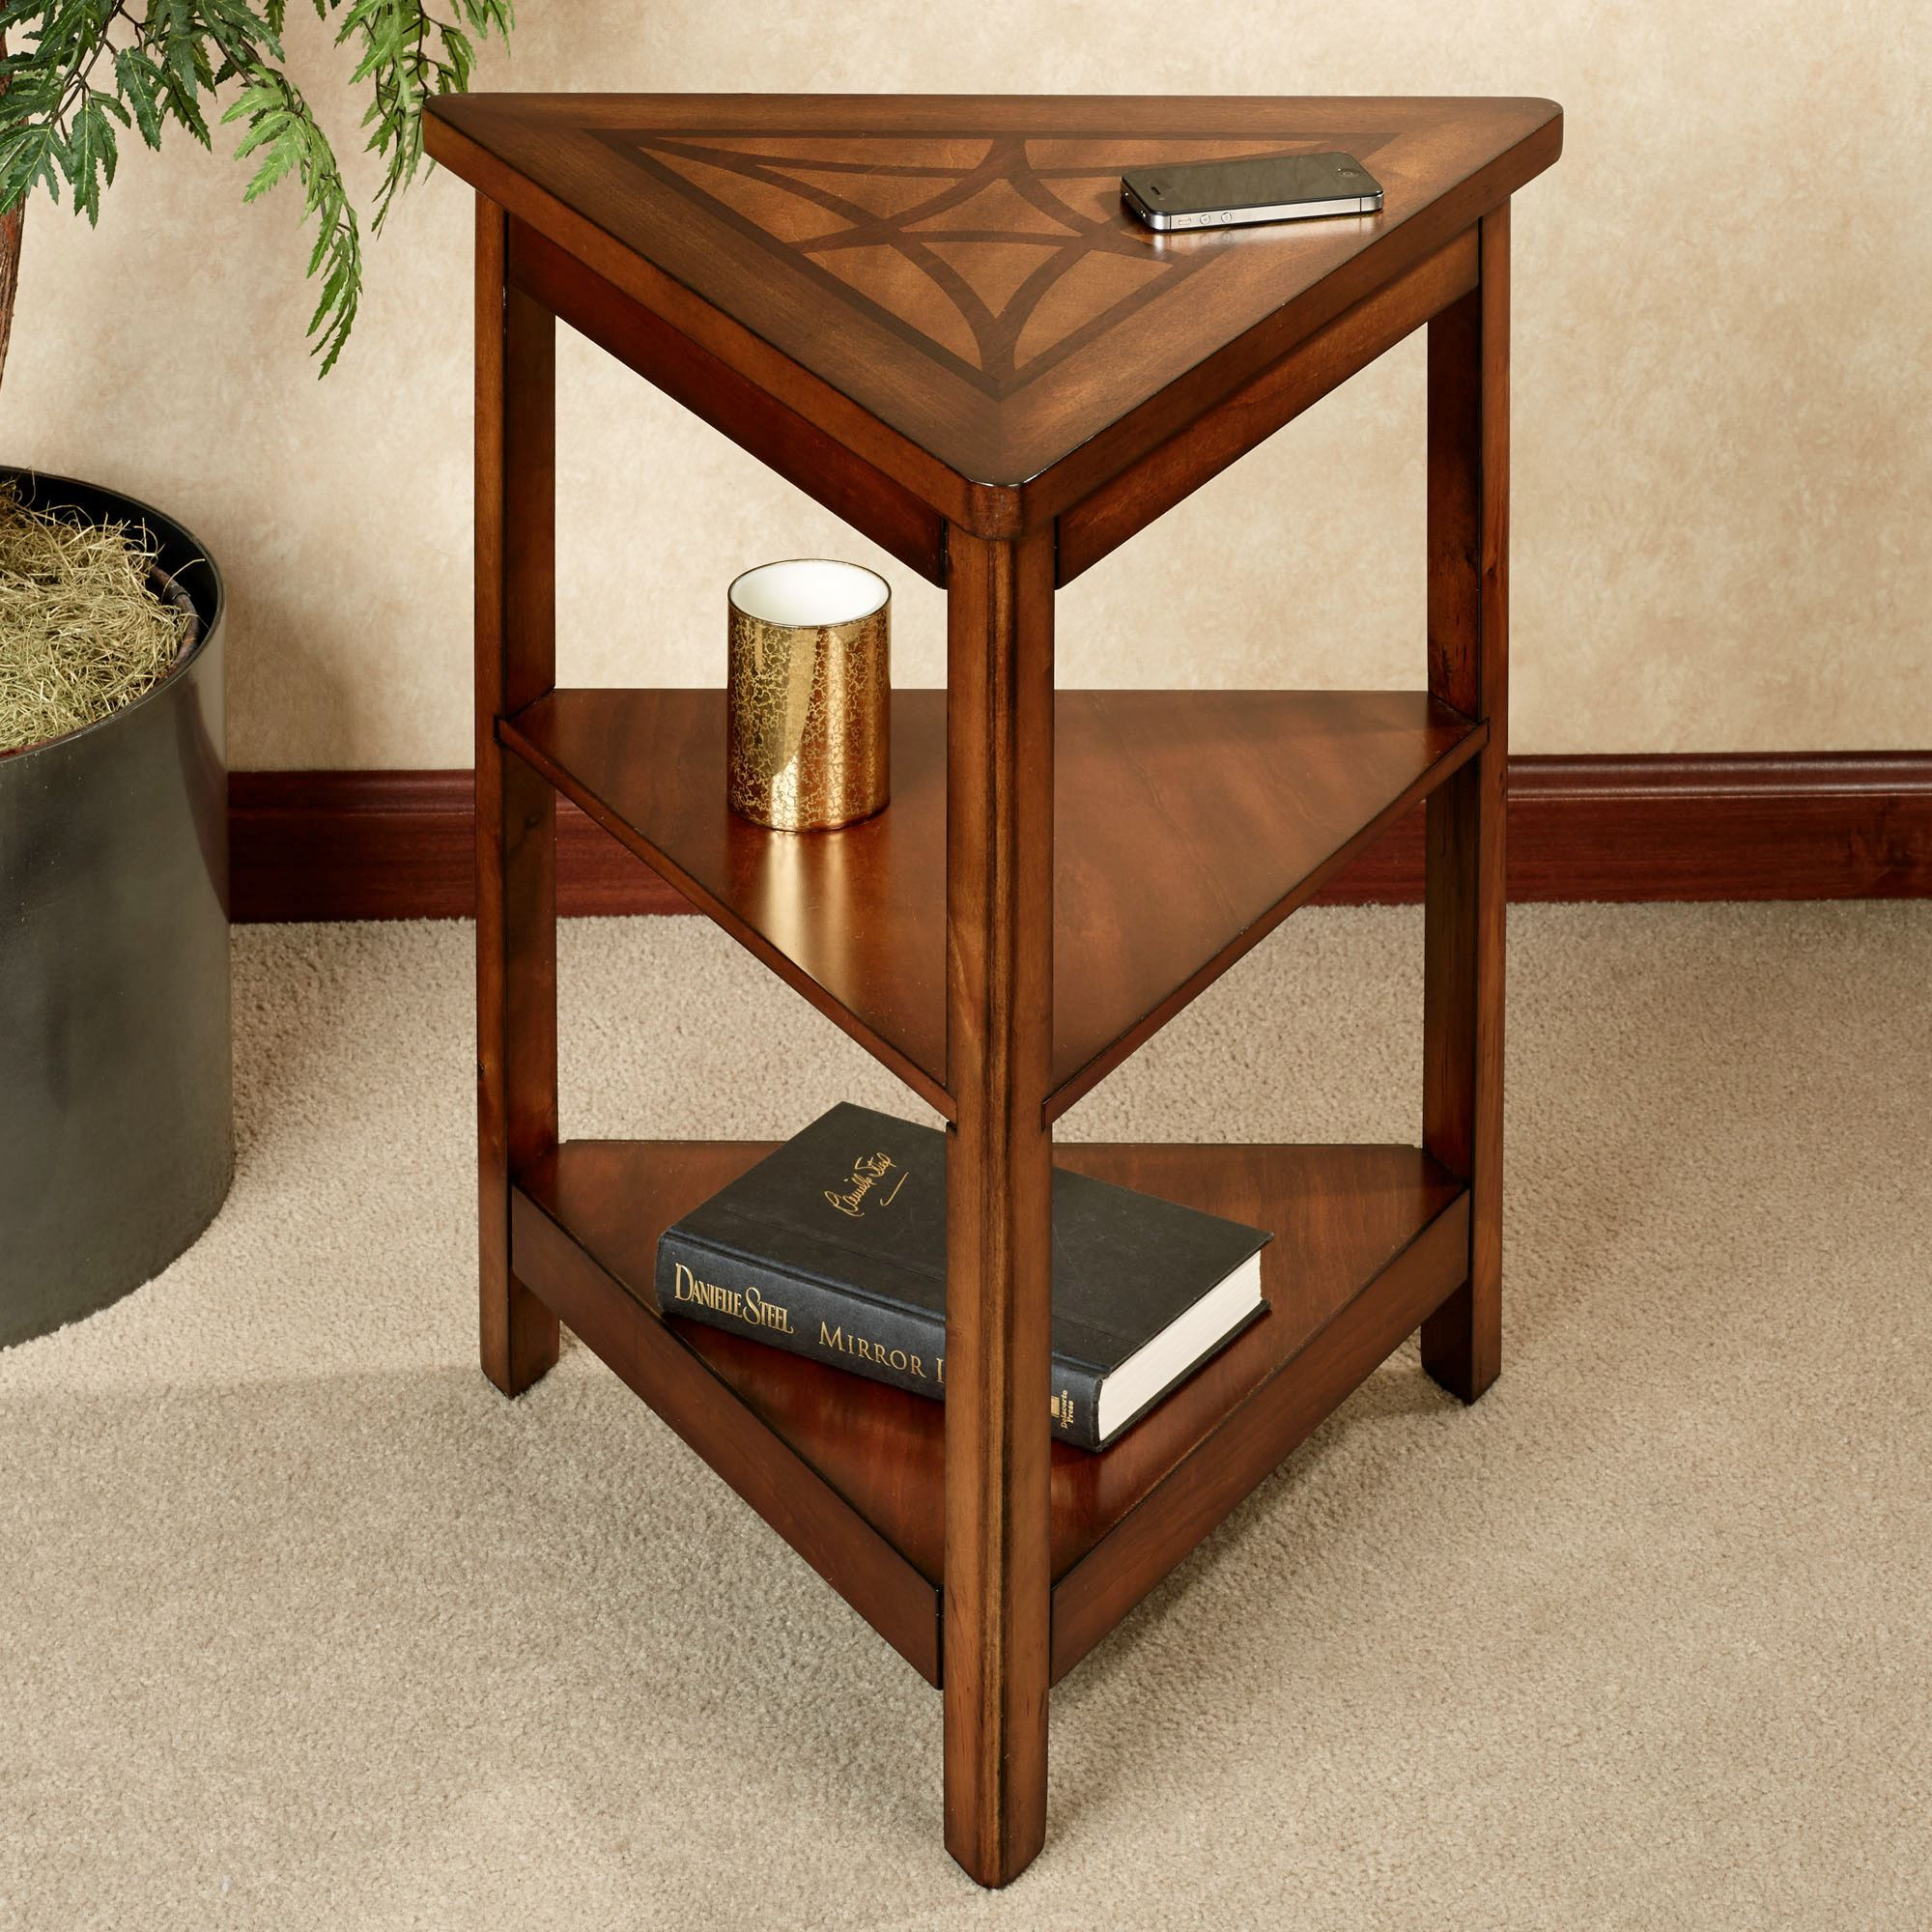 solid oak side table the outrageous amazing narrow cherry end three tiers wood triangle with shelves gallery nice trunk restoration dog cave bedside lockers argos under sofa snack